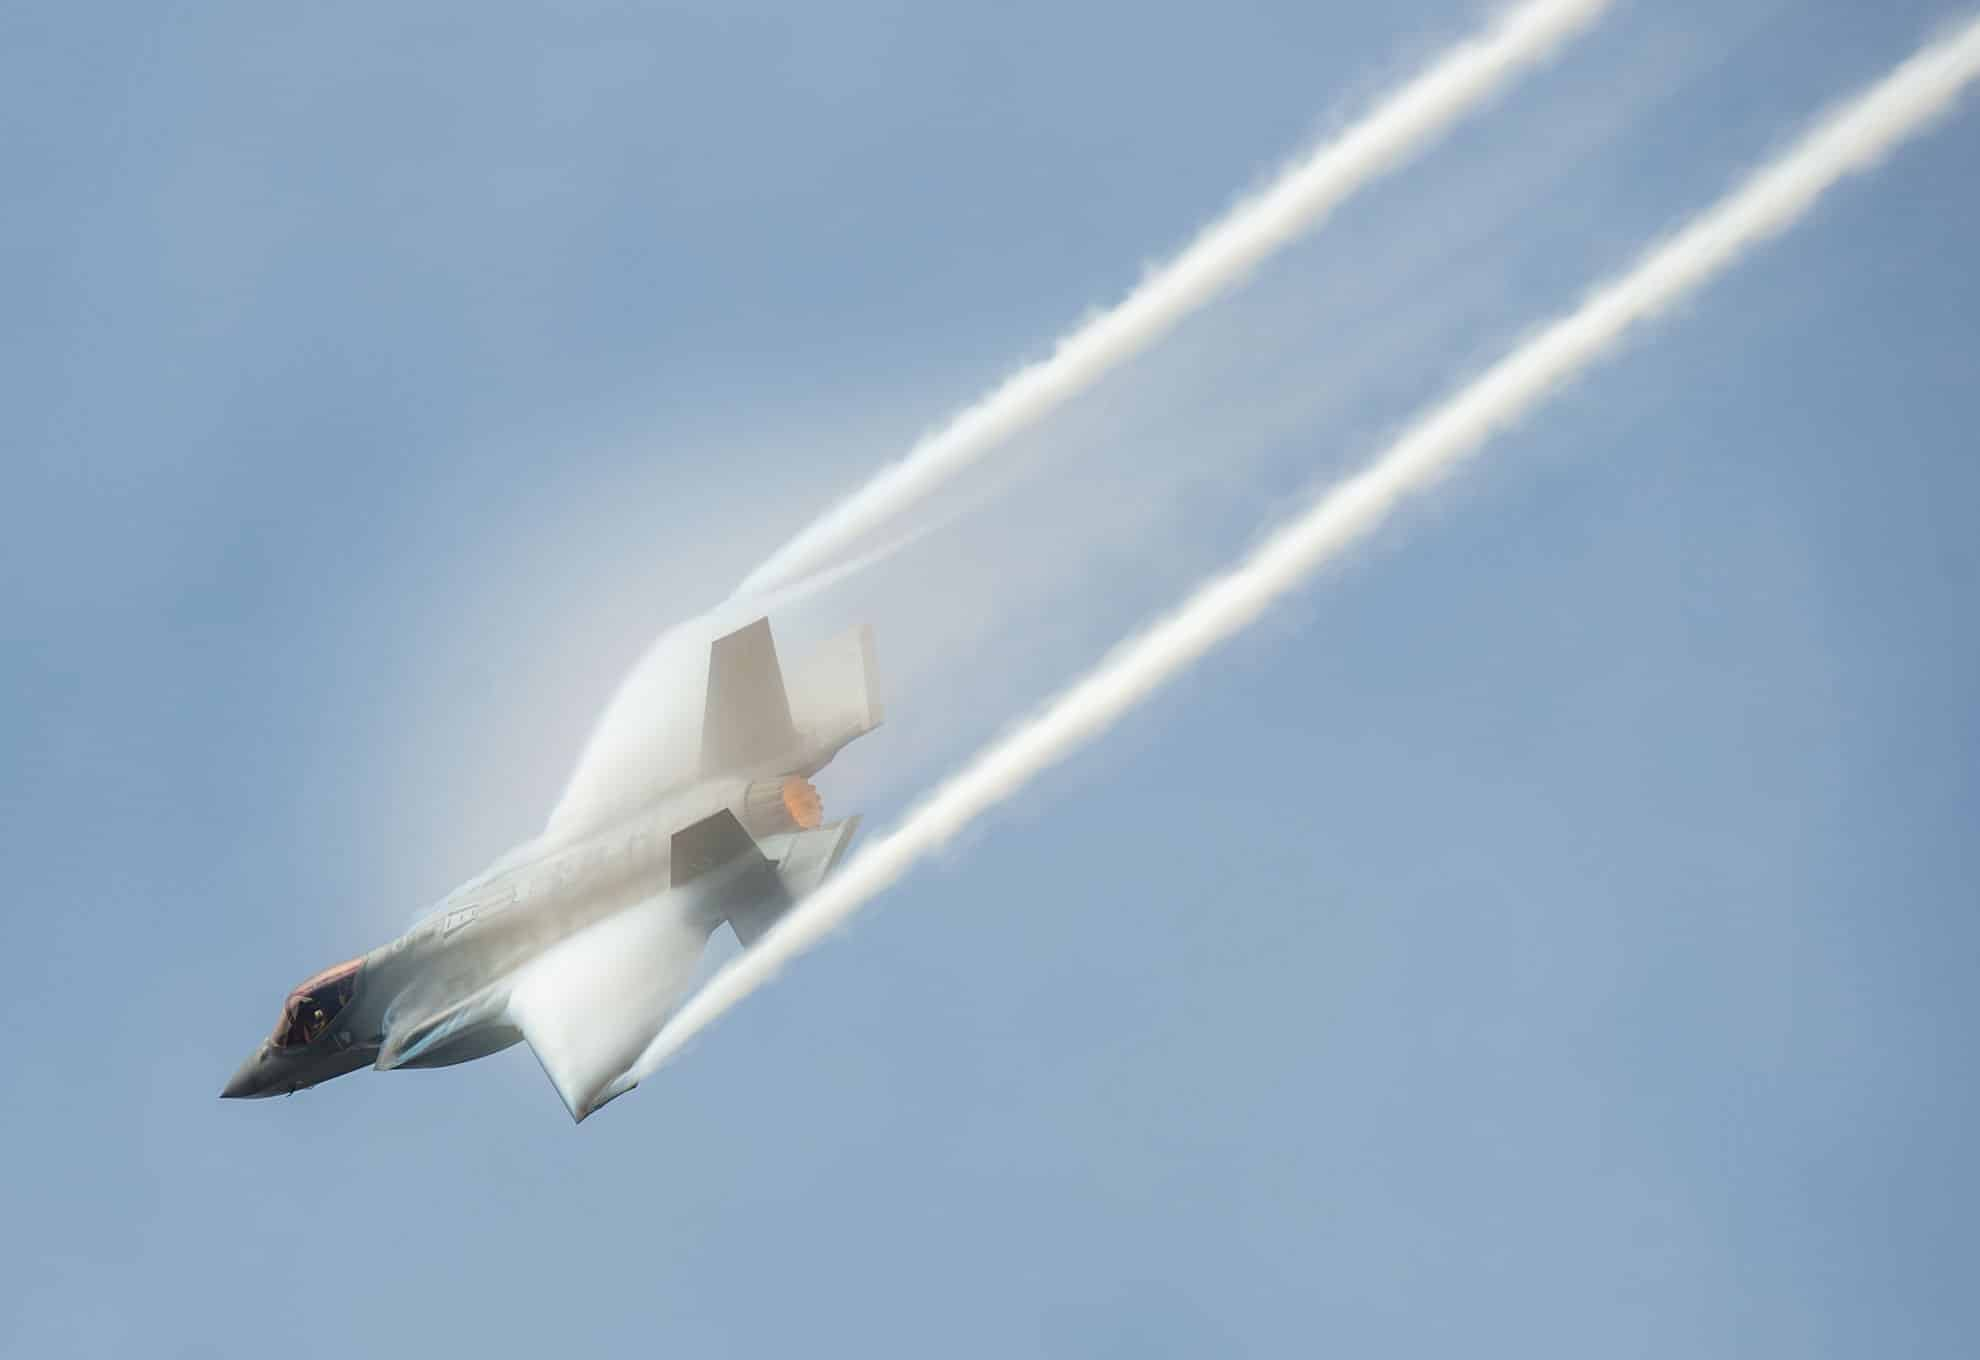 The commander performs aerial maneuvers during the Bell Fort Worth Alliance Air Show. The F-35 is the Air Force's most advanced fifth-generation stealth fighter.